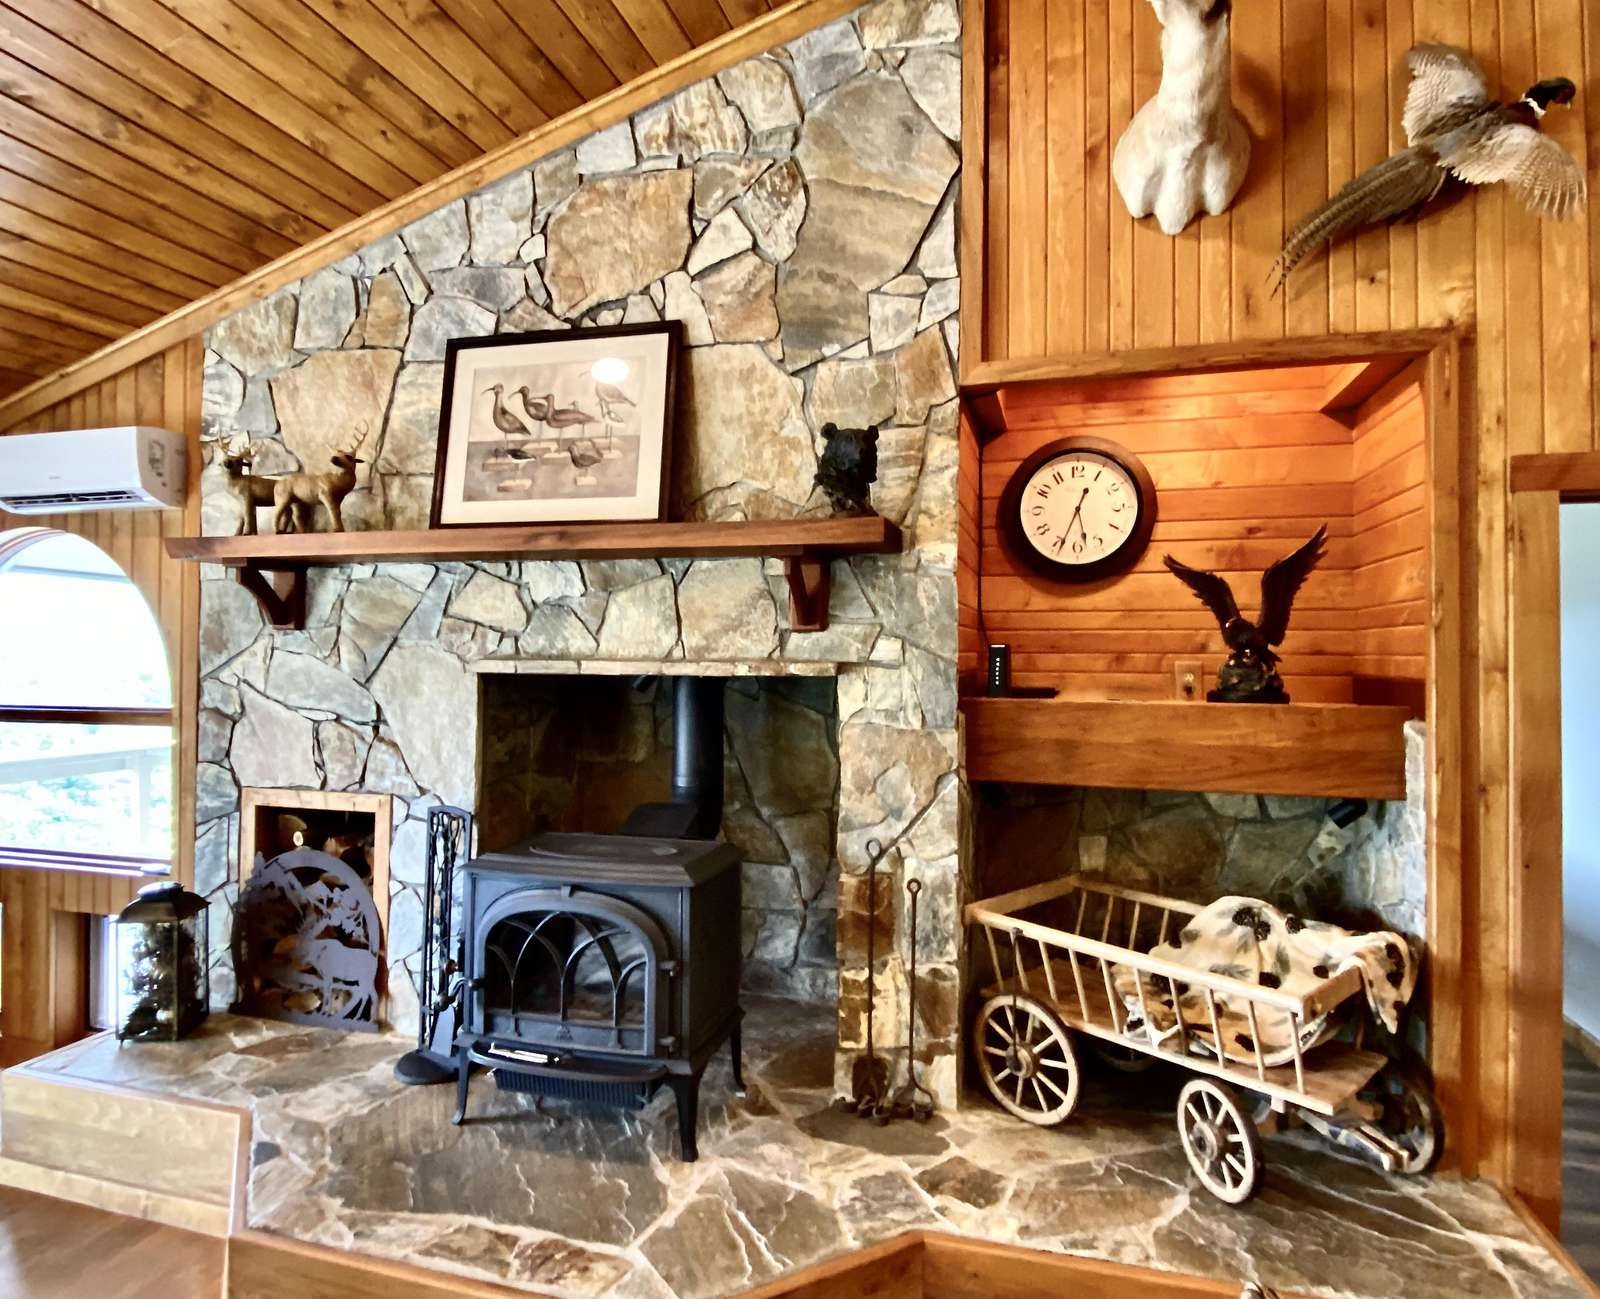 Wood Burning Fireplace and Native Stone surrounding it is a Living-room Focal Point